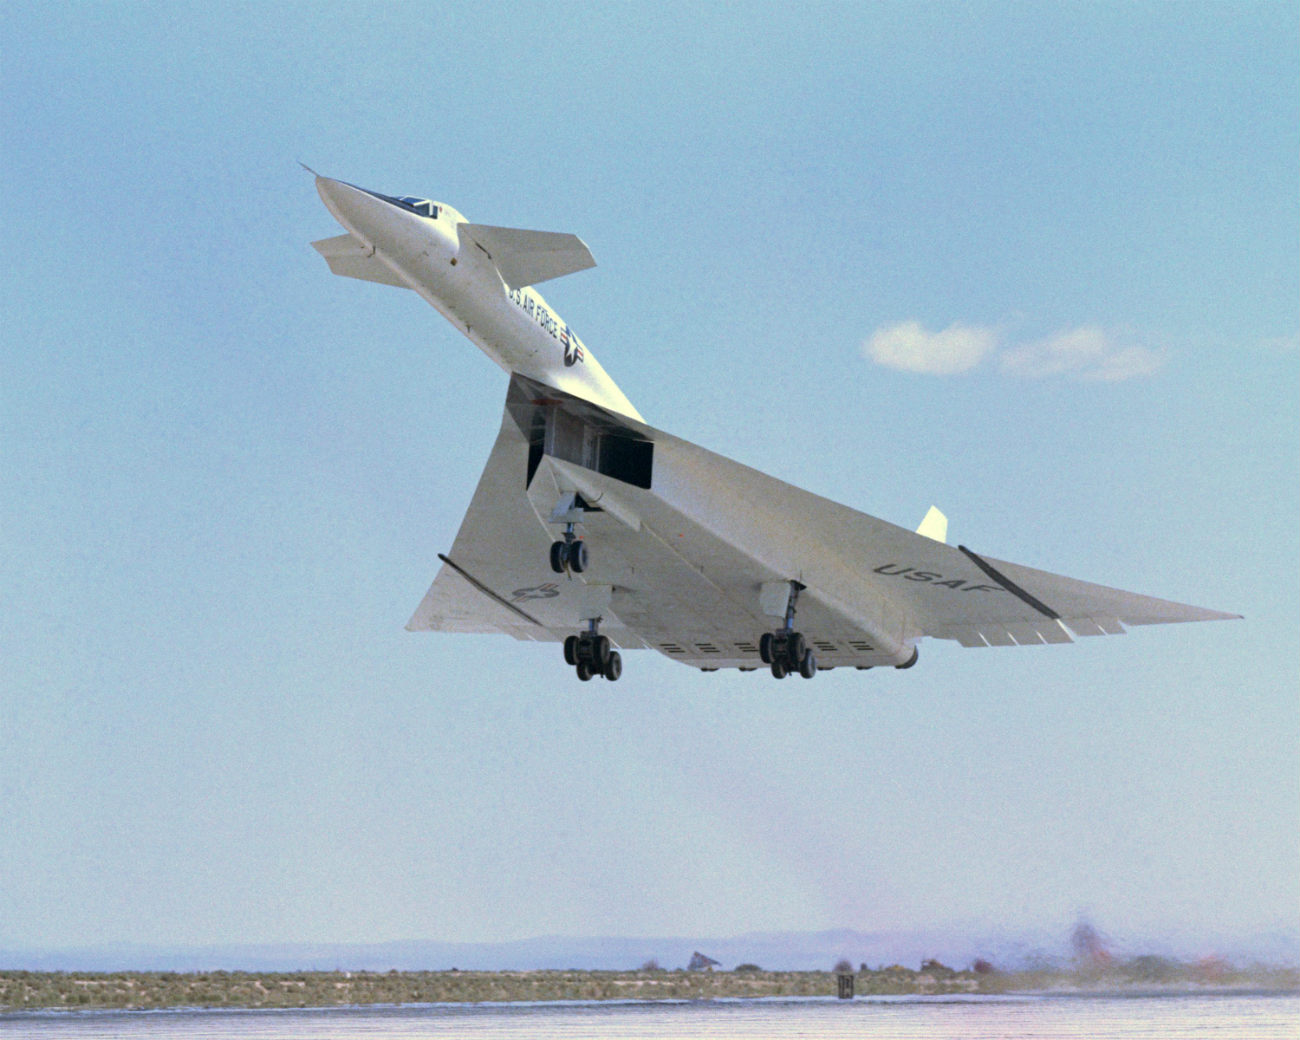 North American Aviation XB-70 Valkyrie cruising altitude